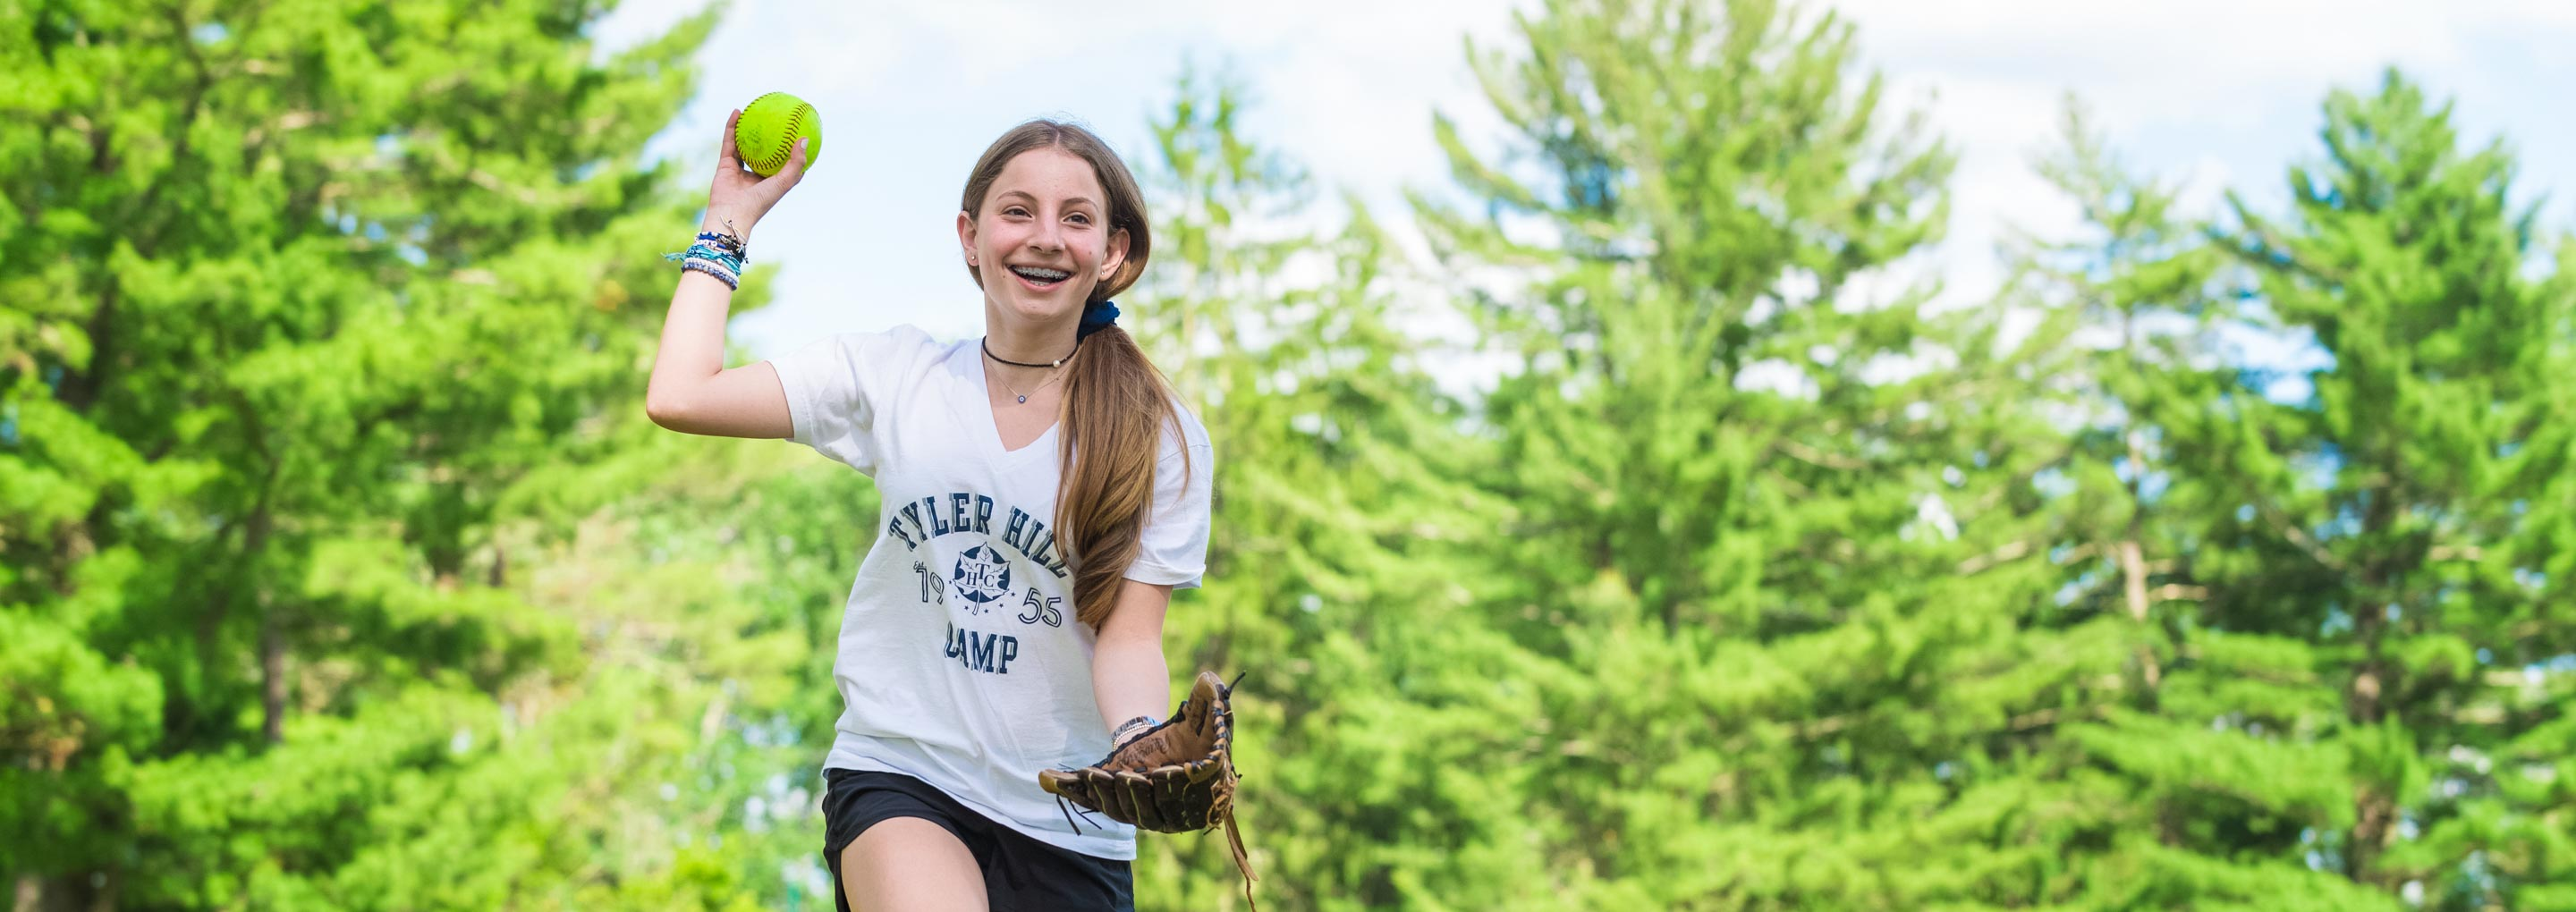 tyler hill girls At point o'pines, a girls' camp on brant lake in the adirondacks that has a   wendy siegel, a director of tyler hill camp in tyler hill, pa, said.